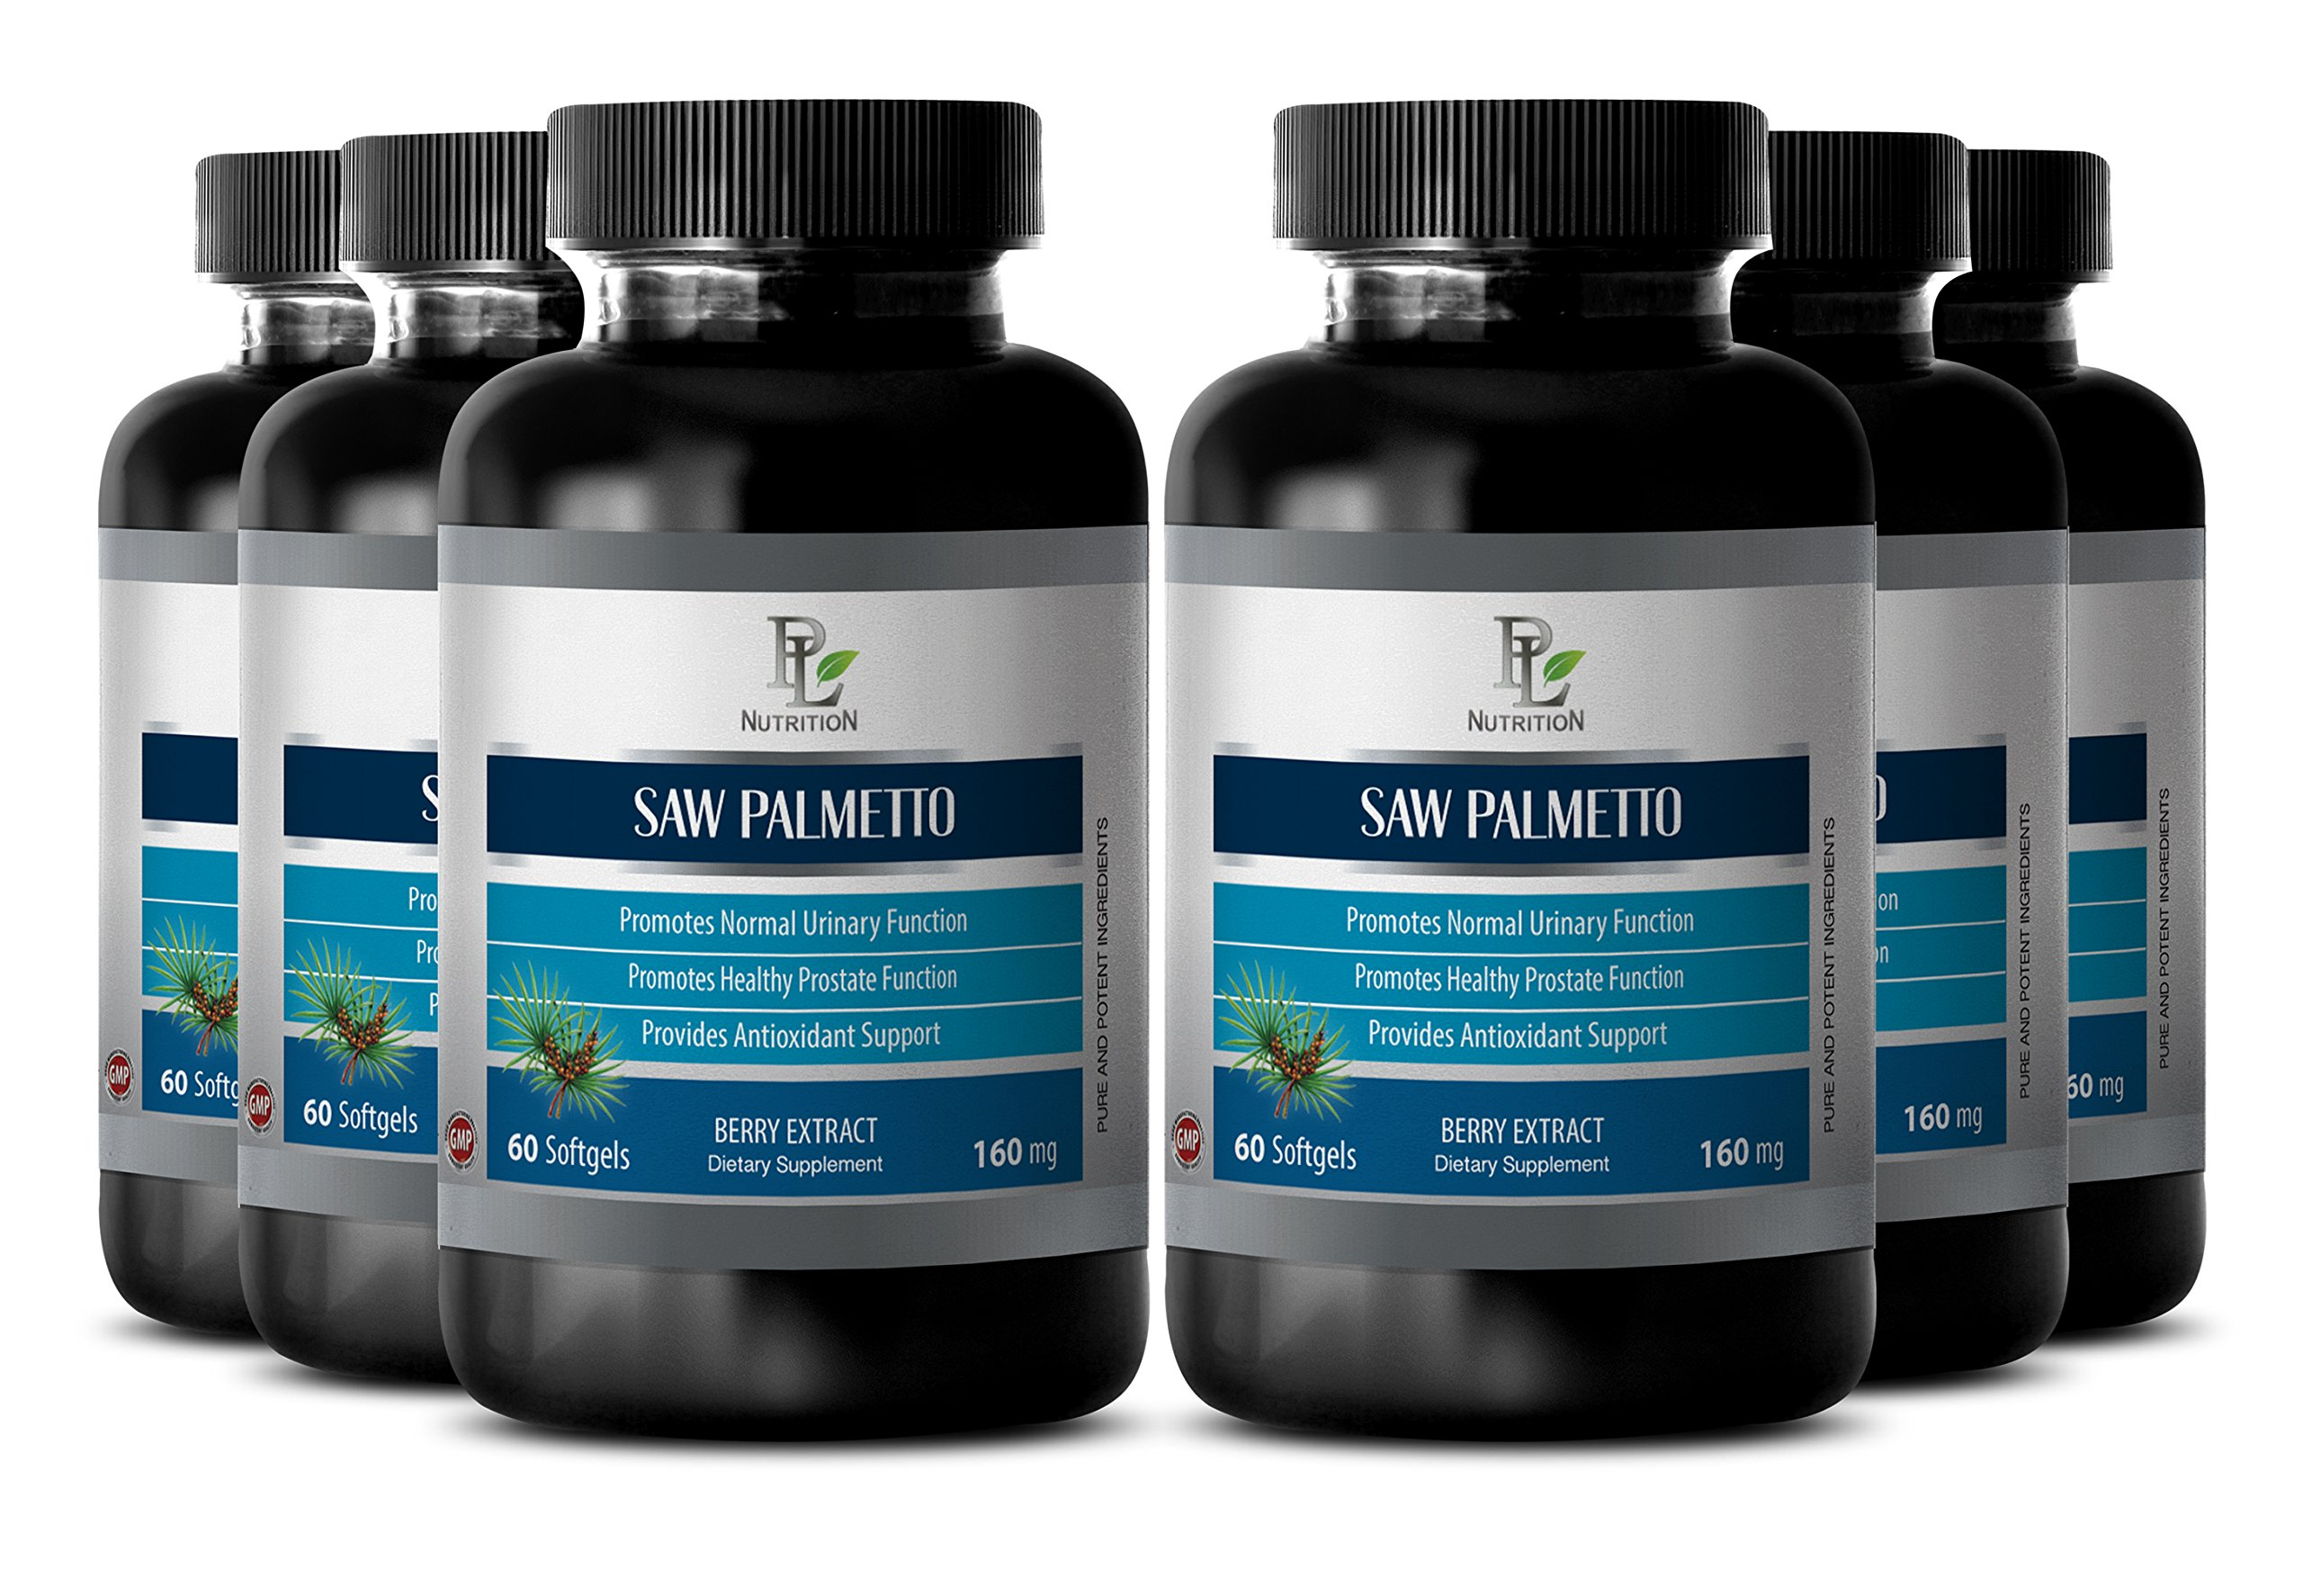 Libido supplements men - SAW PALMETTO BERRY EXTRACT 160Mg - Male prostate health - 6 Bottle 360 Softgels by PL NUTRITION